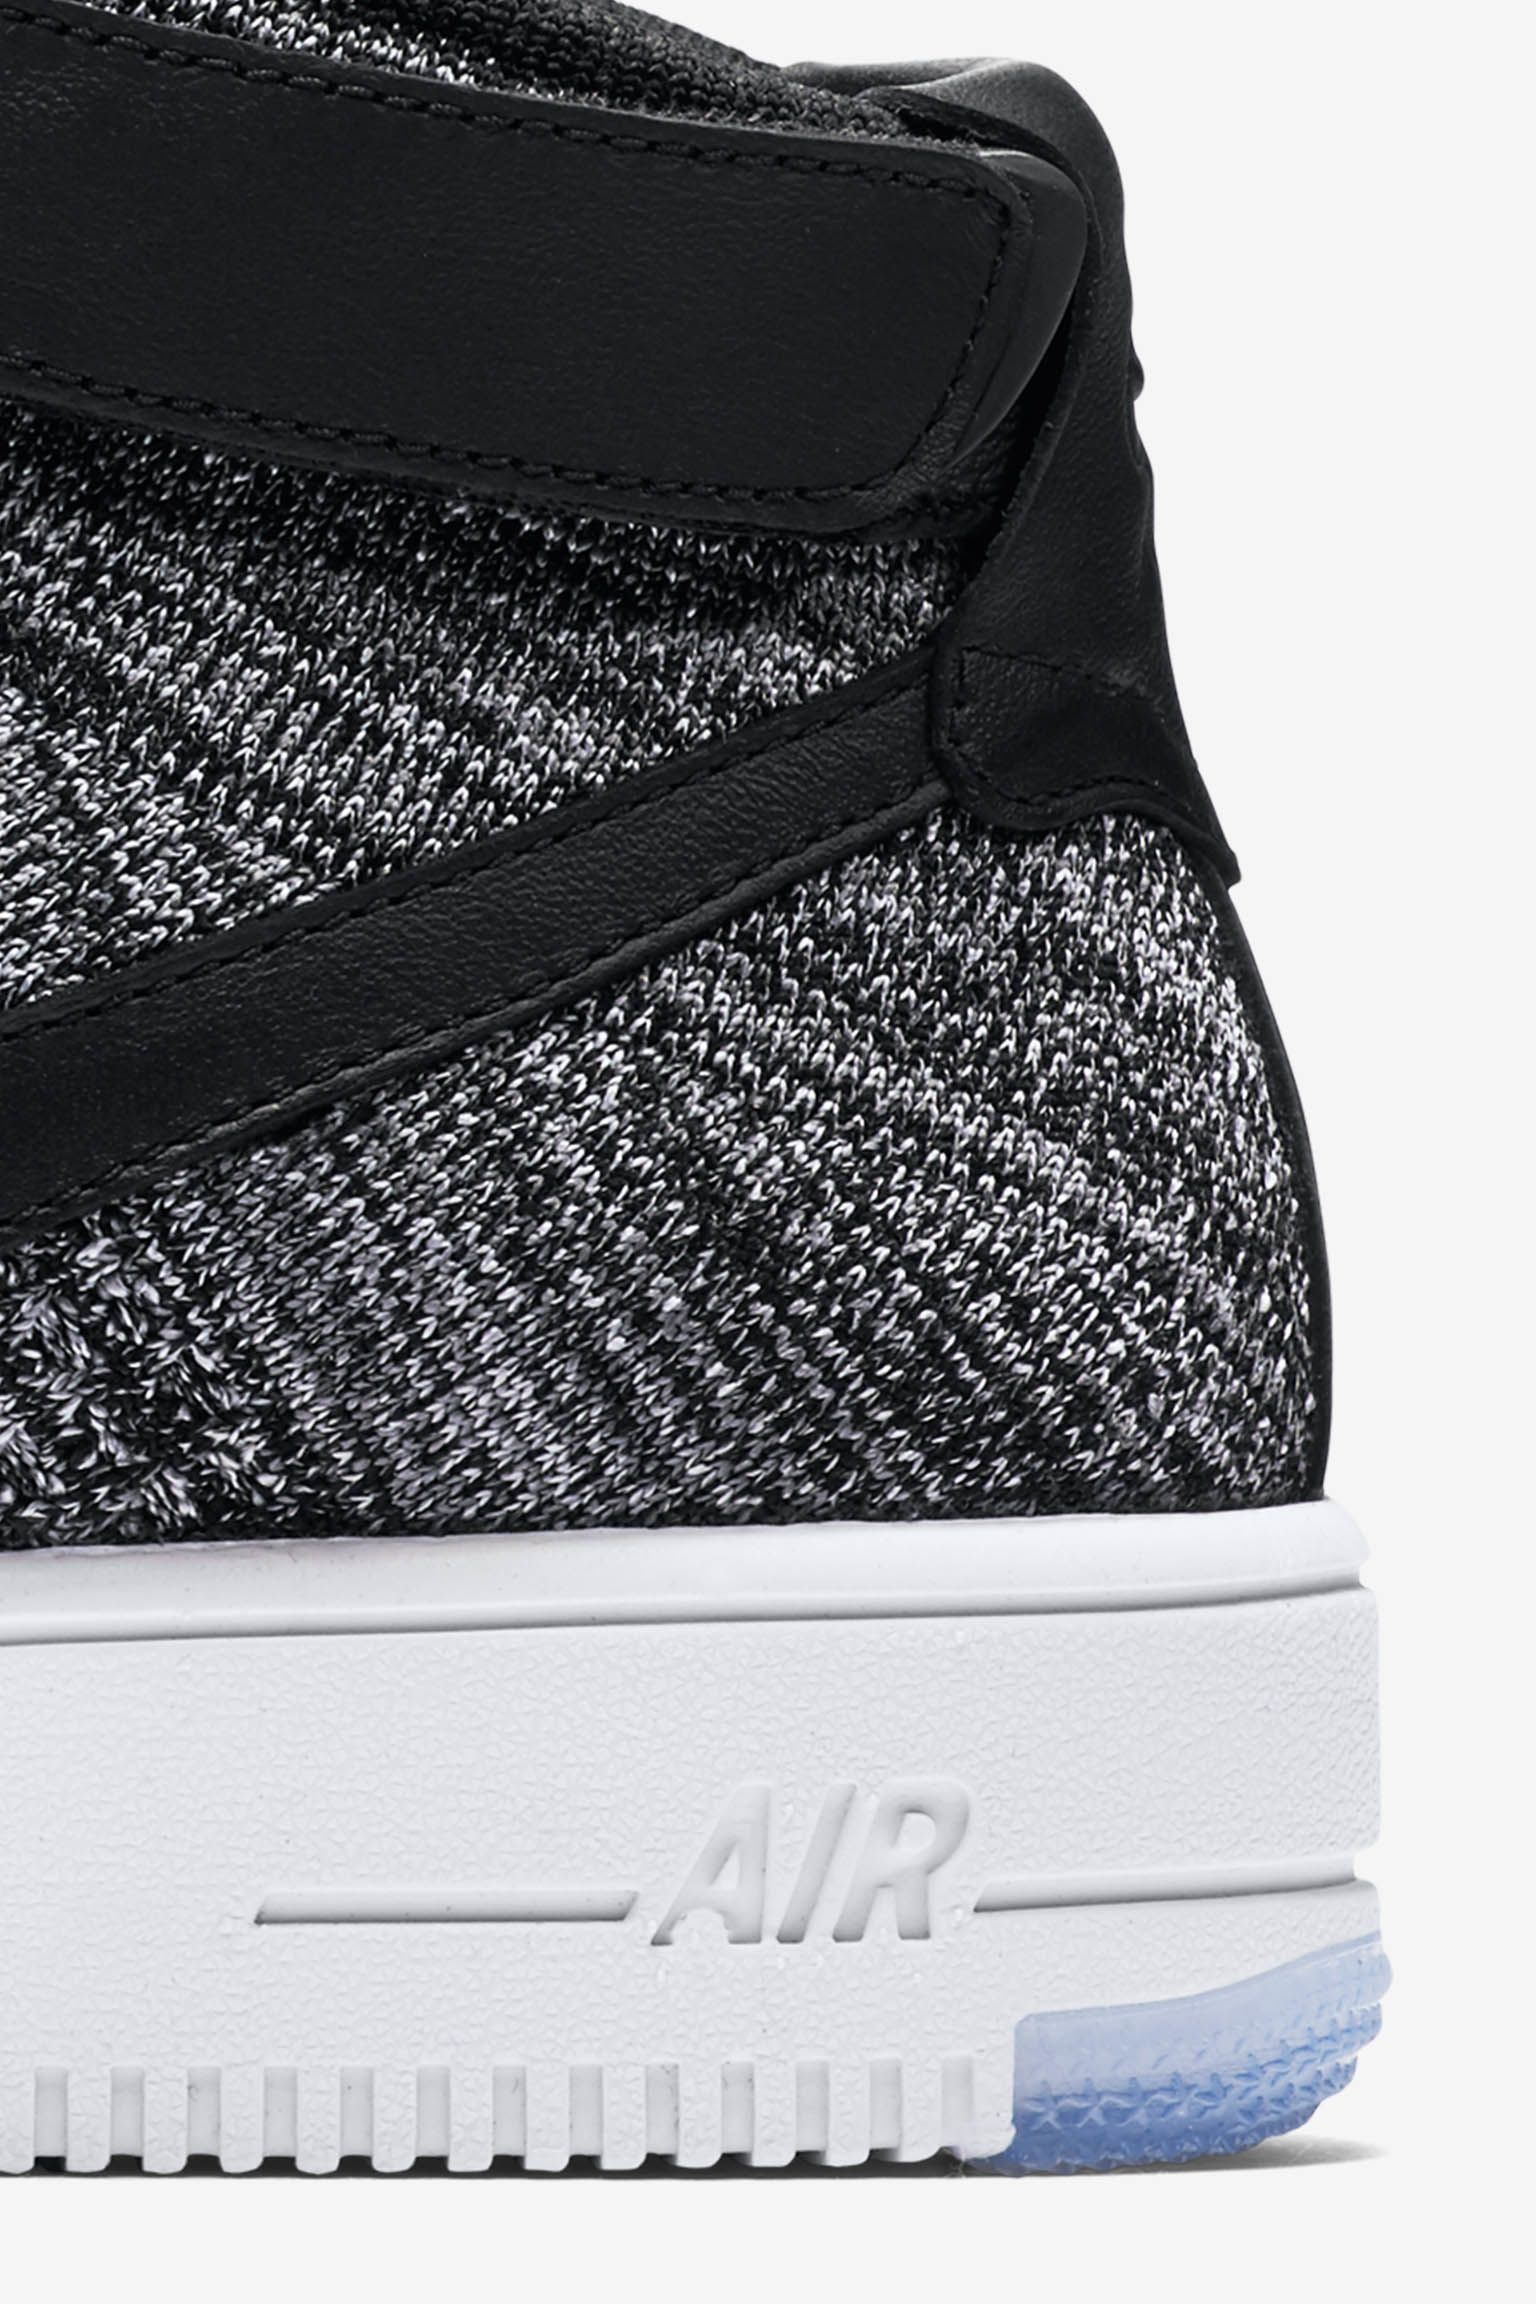 Women's Nike Air Force 1 Ultra Flyknit 'Black & White' Release Date